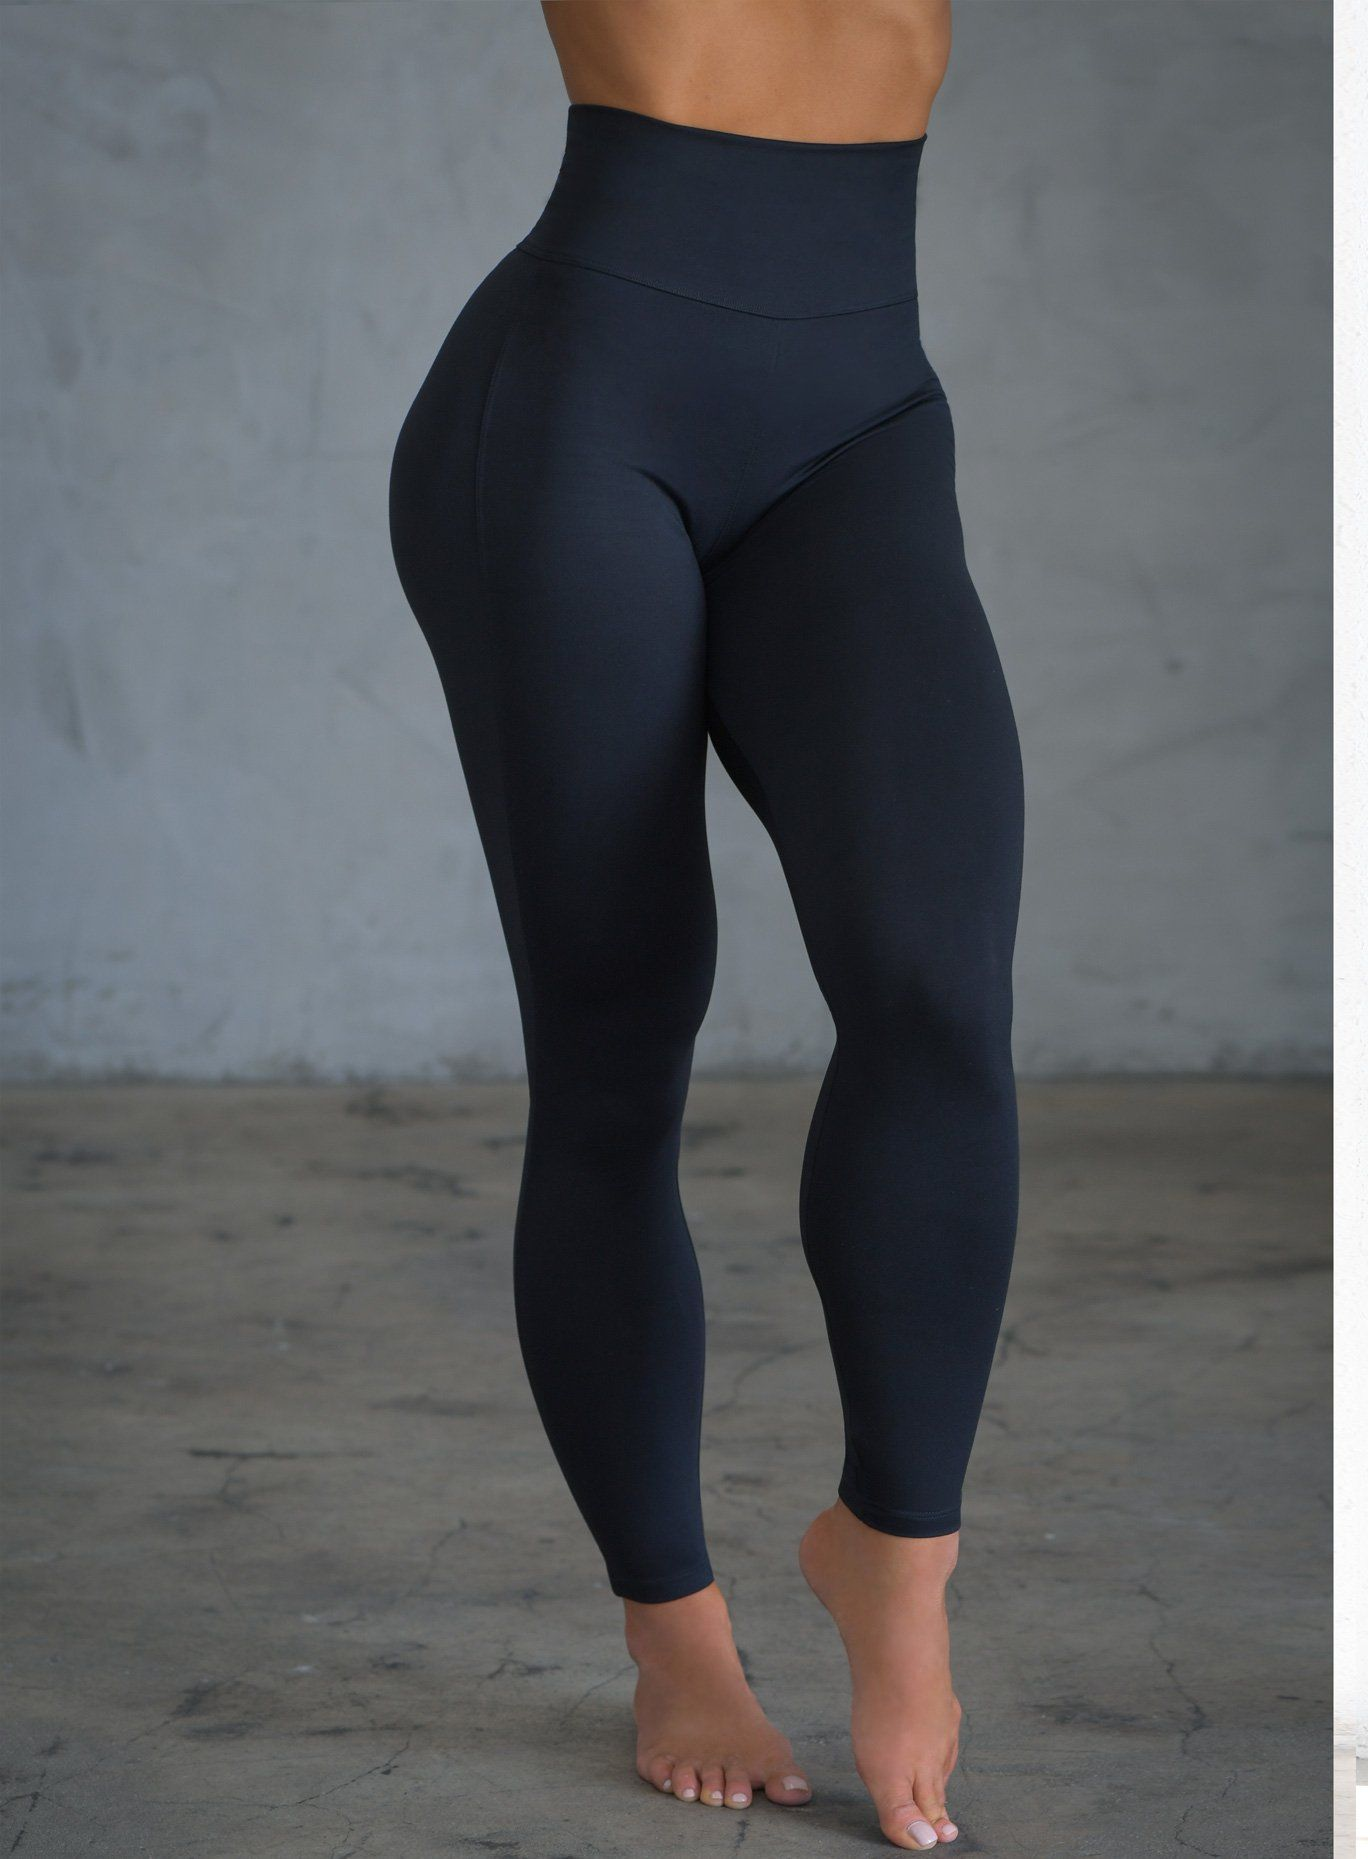 3349d89f12 Sexy Back Leggings in 2019 | Hot yoga pants